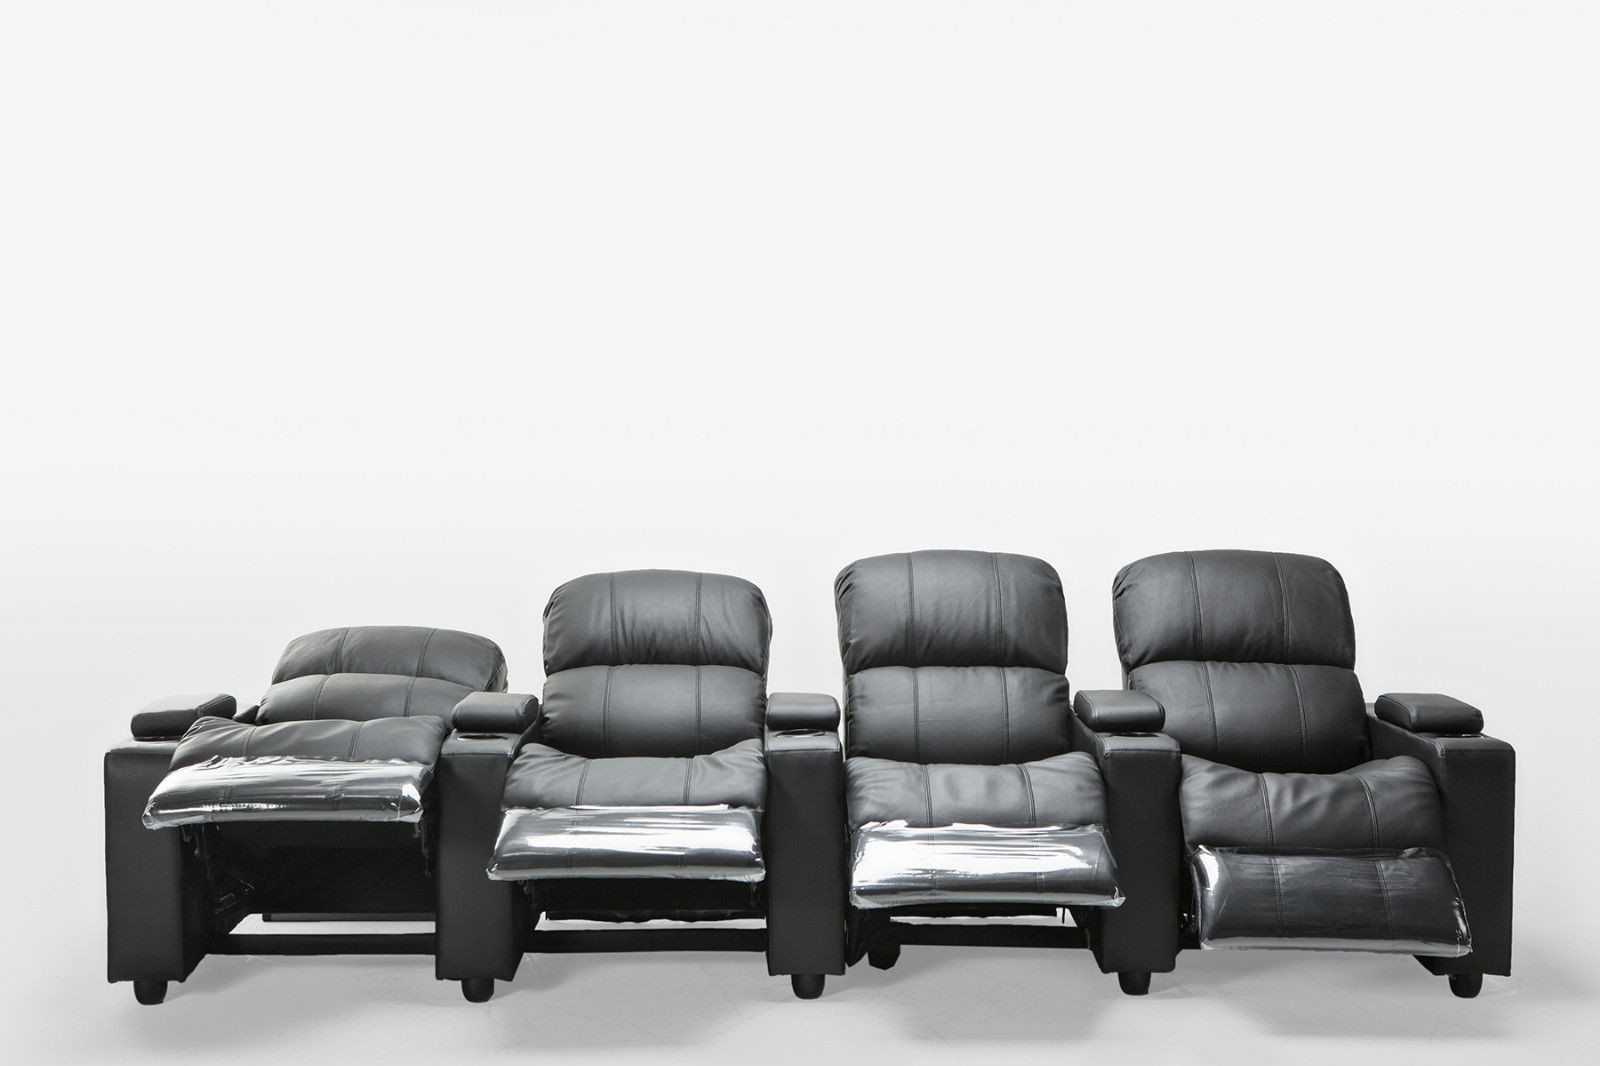 Sophie Brand New Black Leather 4 Seater Recliner Home Theatre Lounge Suite & Sophie Brand New Black Leather 4 Seater Recliner Home Theatre ... islam-shia.org